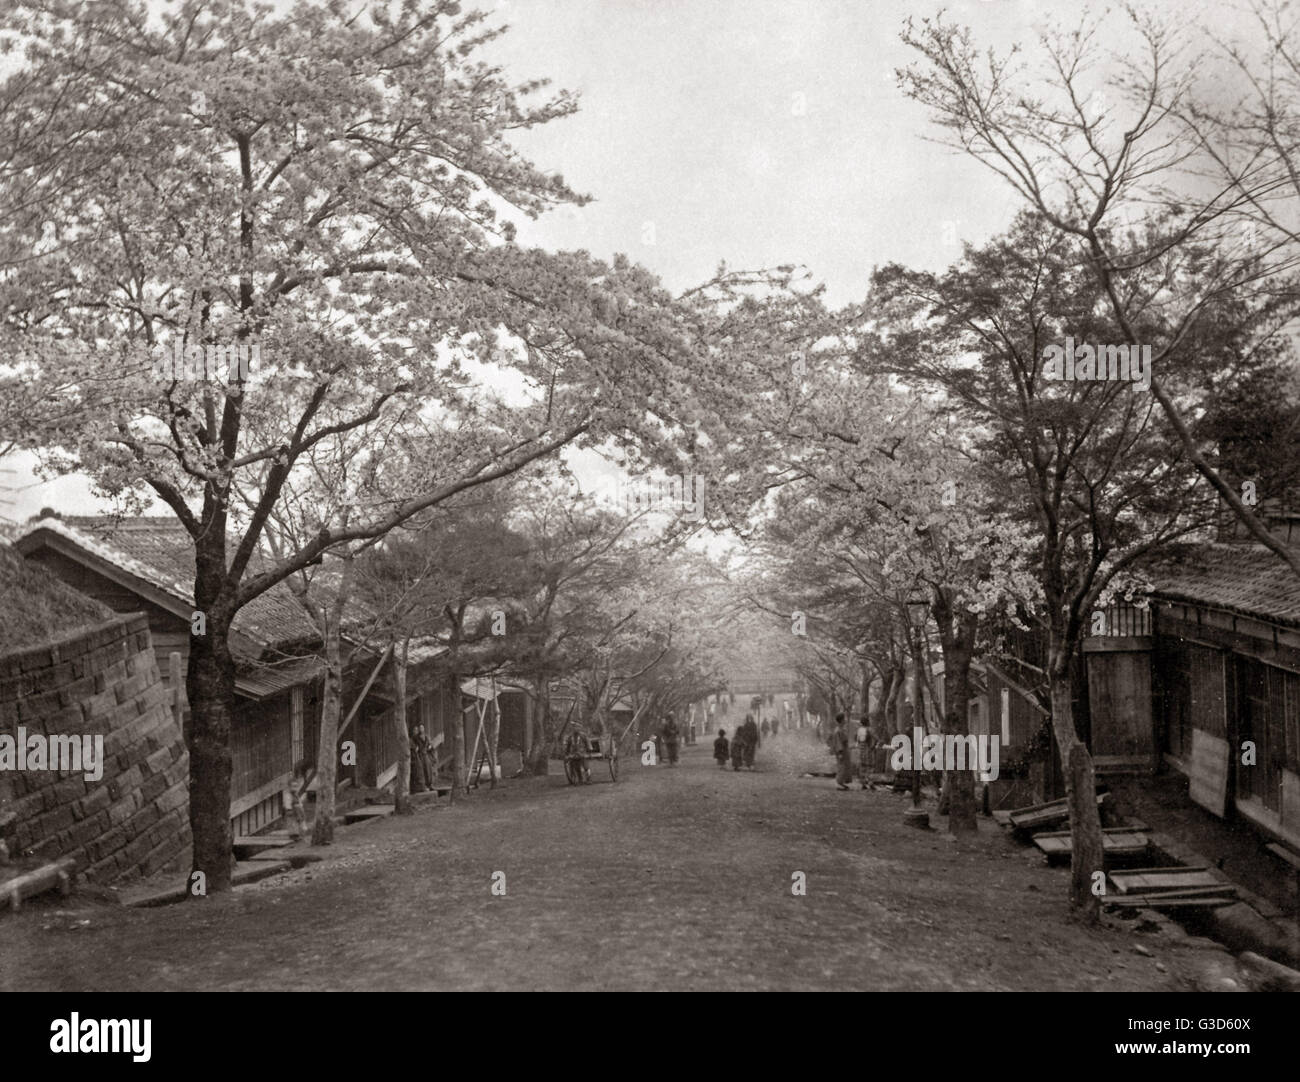 Cherry Blossom lining a sloping street, Japan, circa 1880s.     Date: circa 1880s - Stock Image